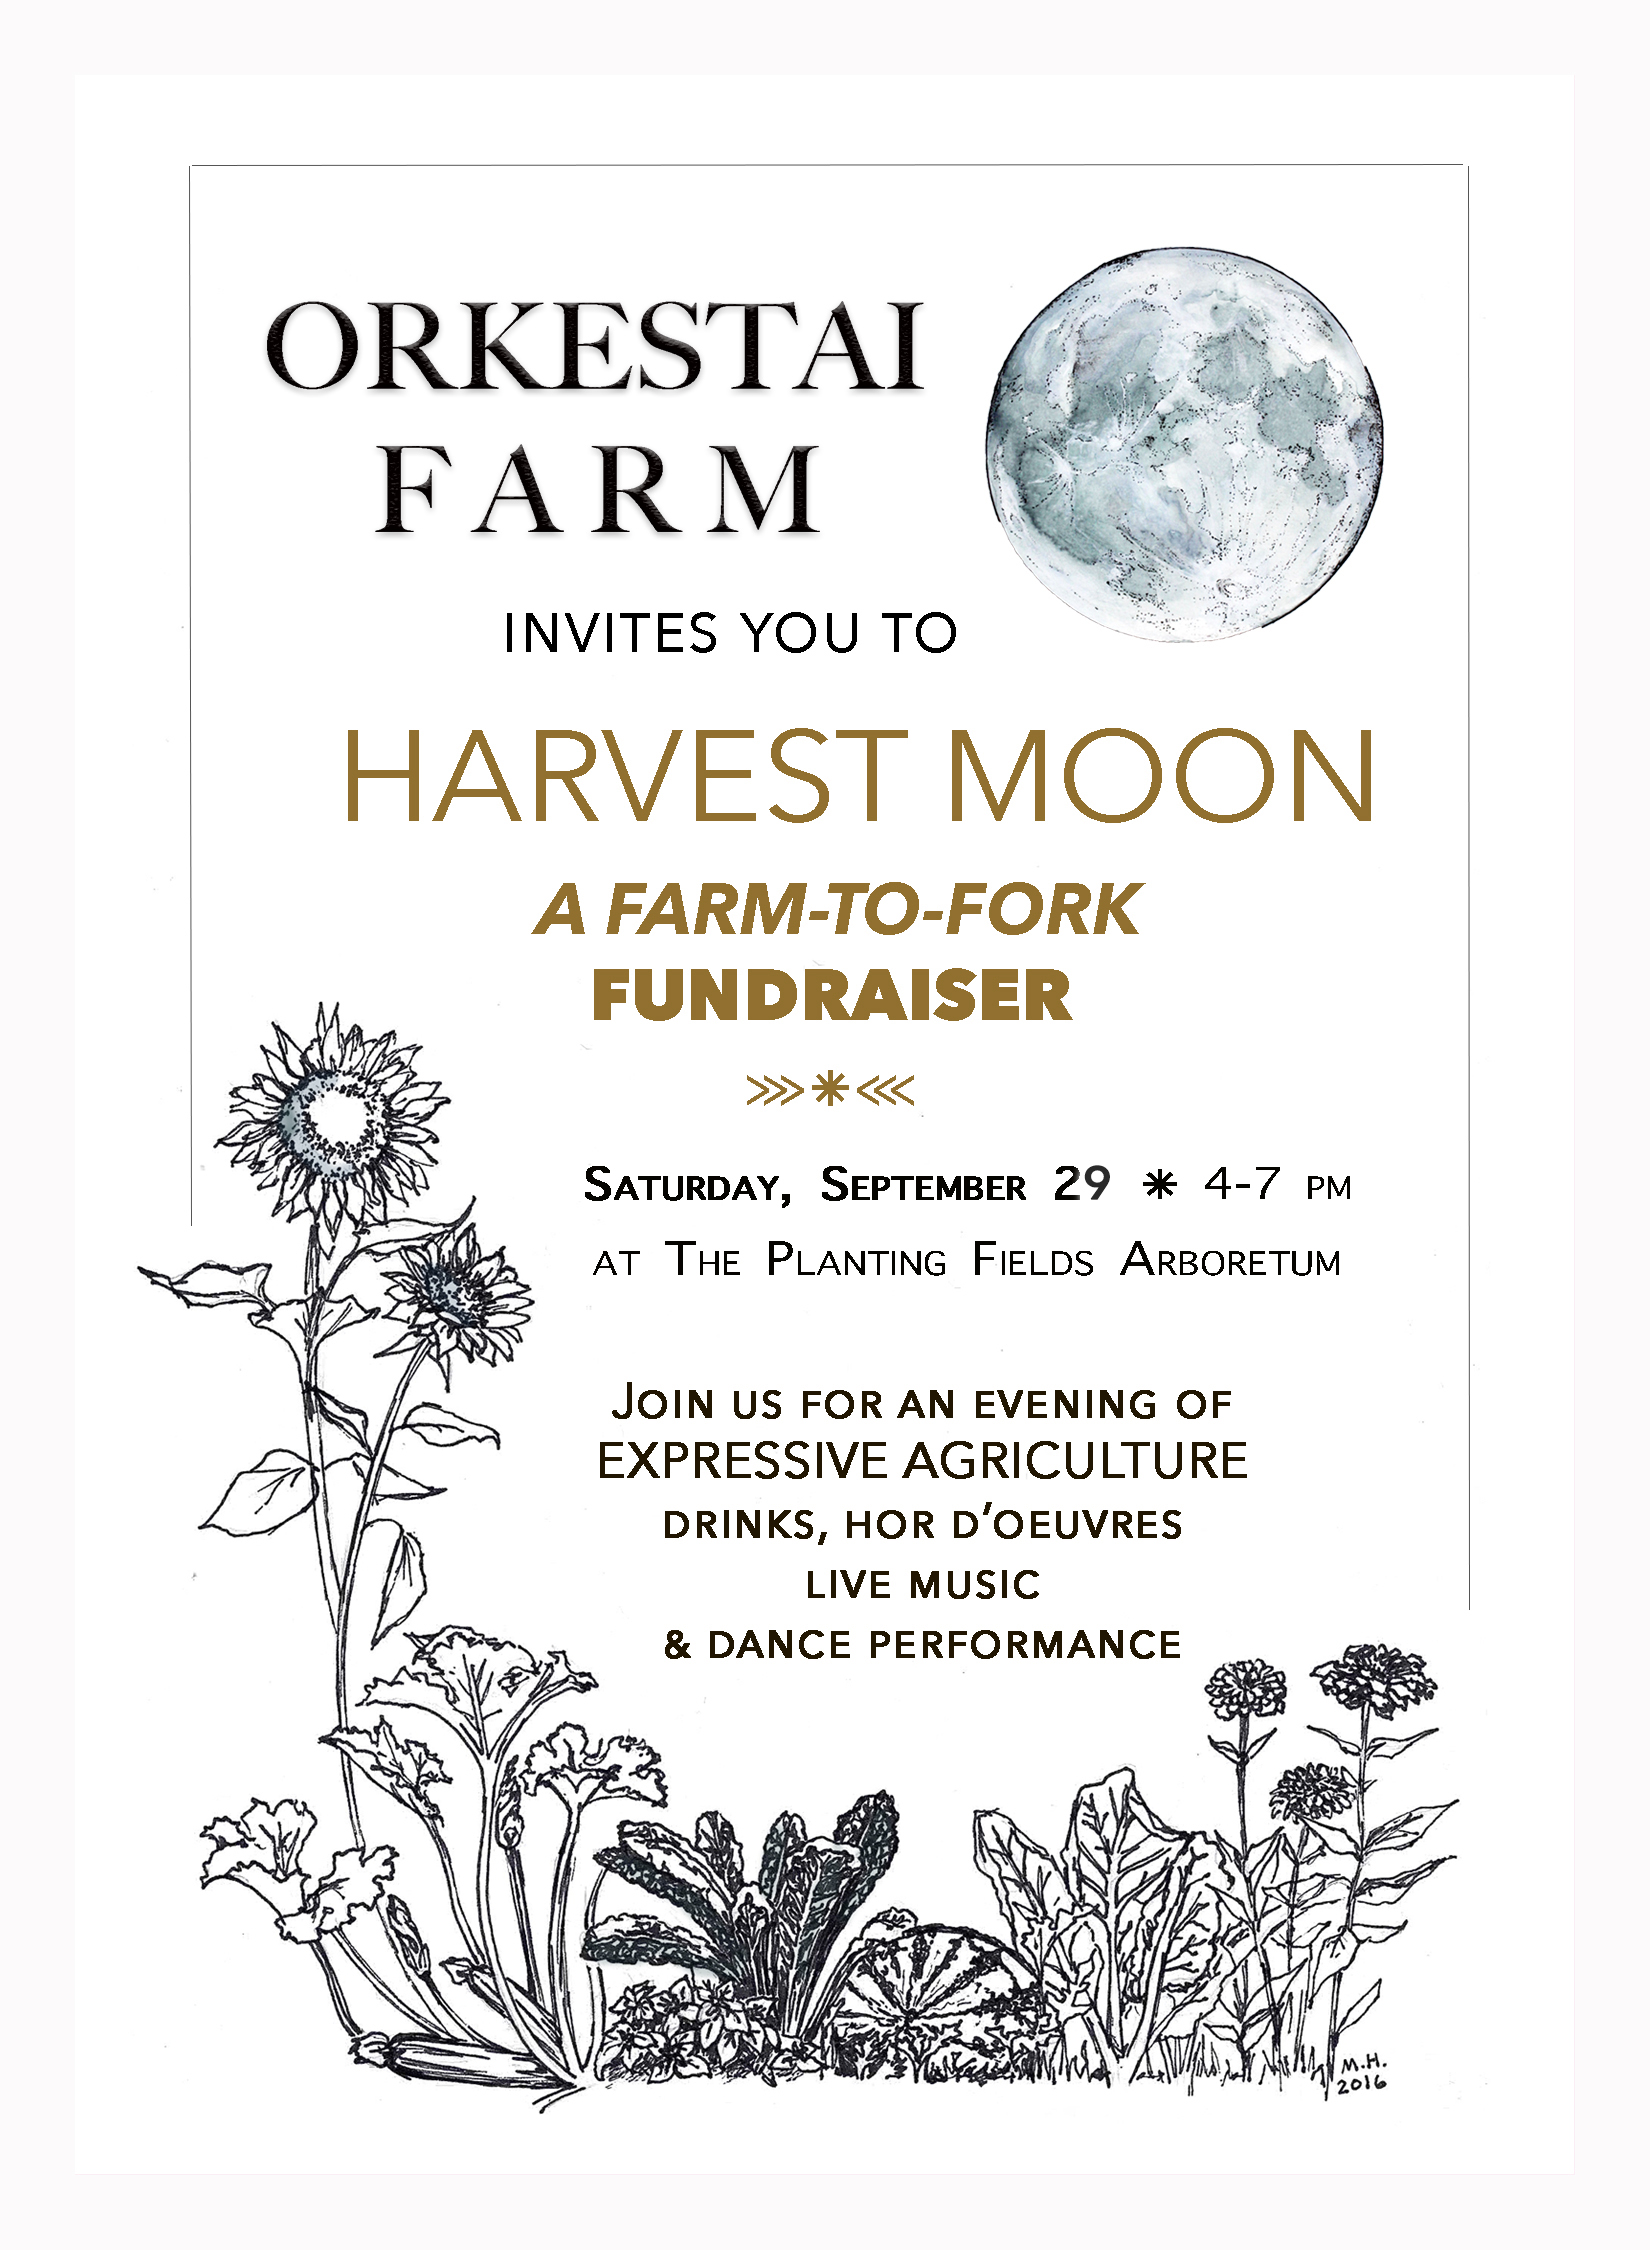 orkestai fundraiser invite front updated.jpg